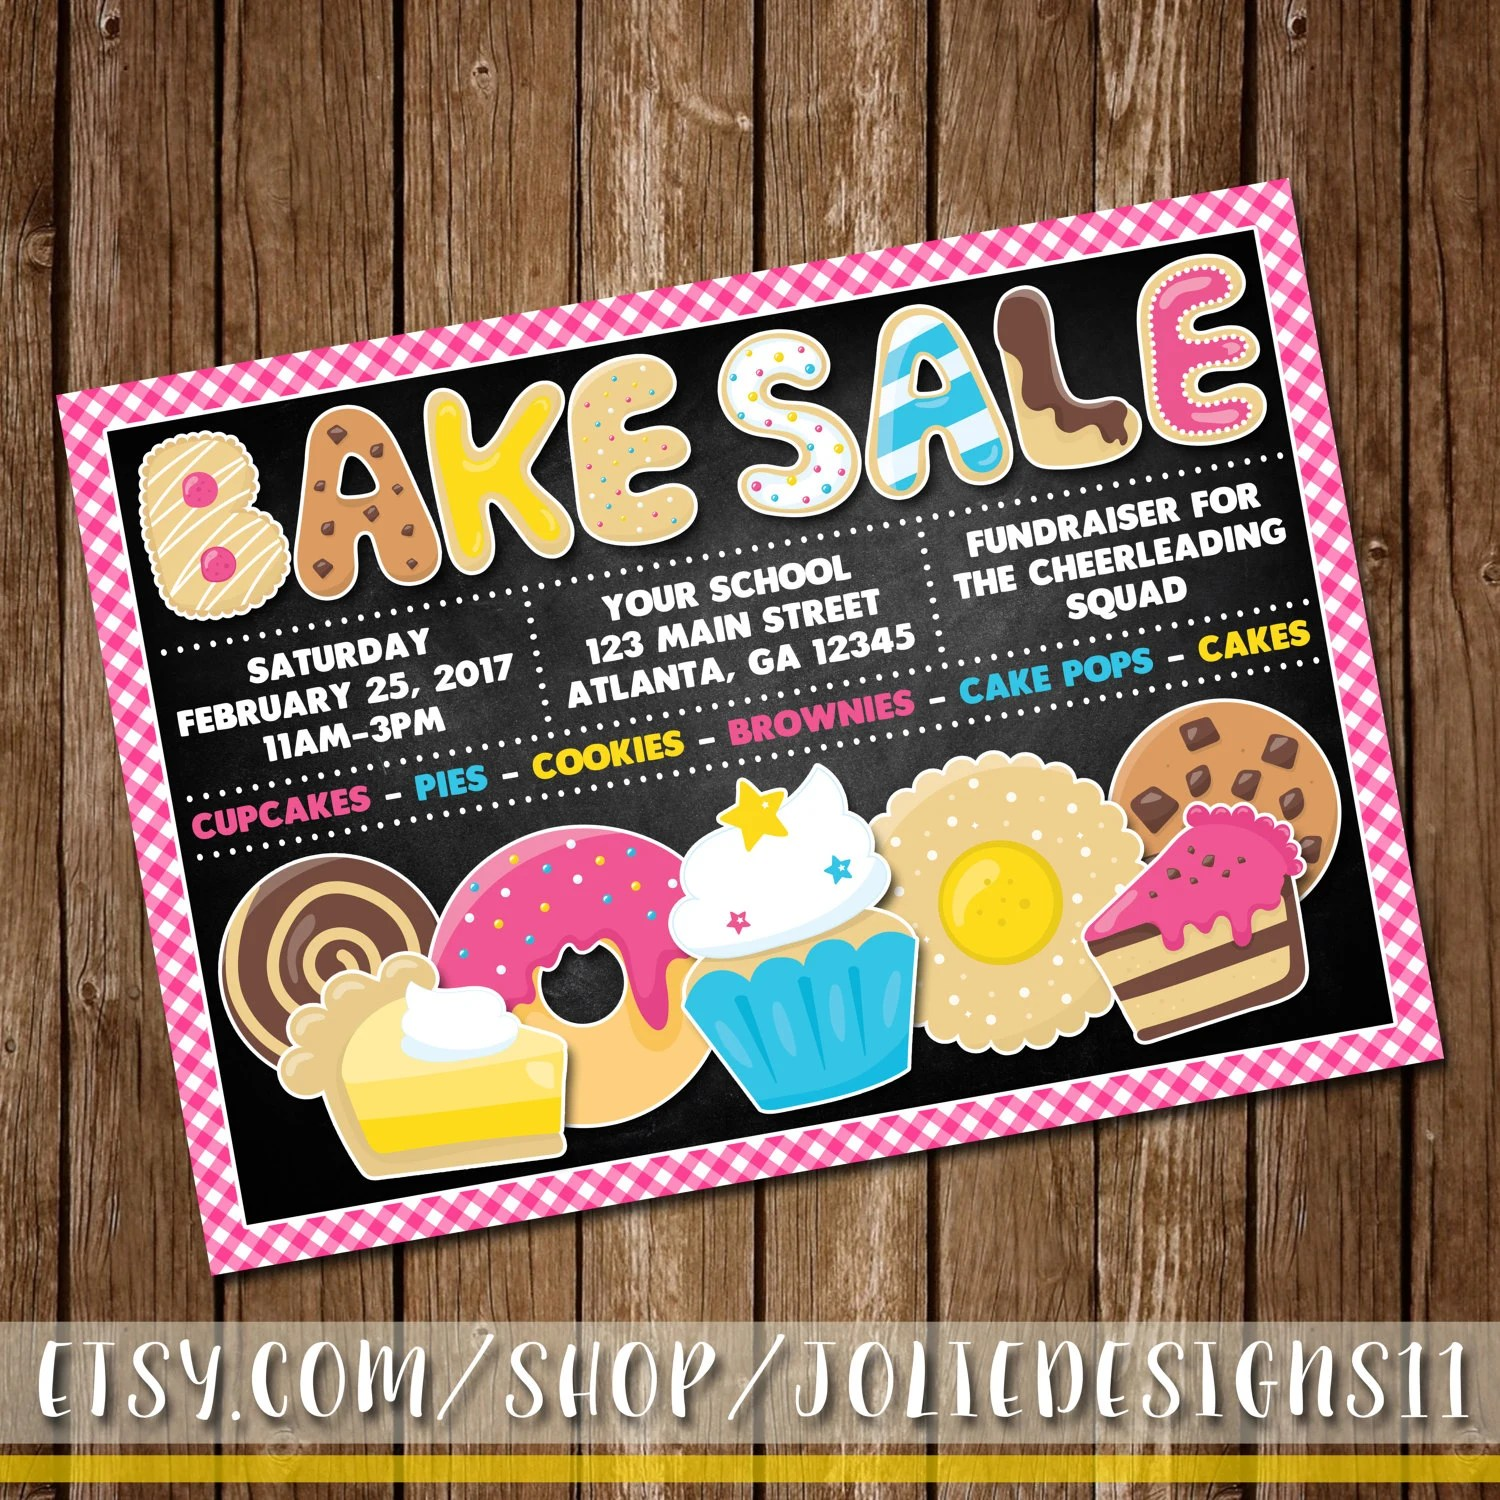 Bake Sale Flyer Fall/Easter/Christmas/Halloween School Etsy